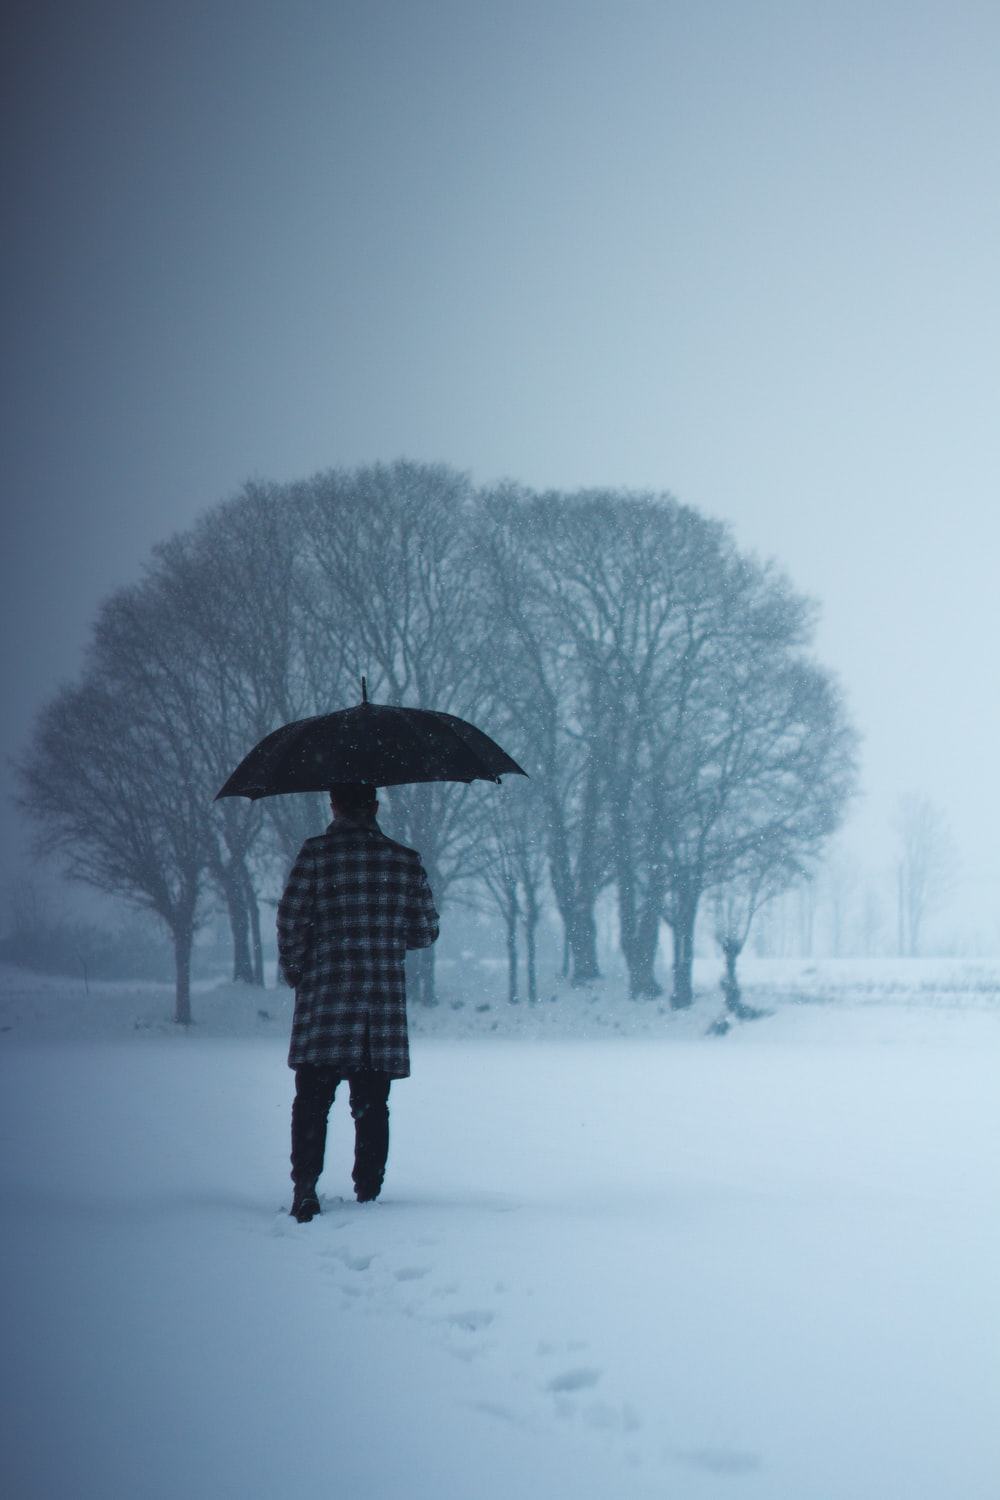 person in black and white plaid coat holding umbrella standing on snow covered ground